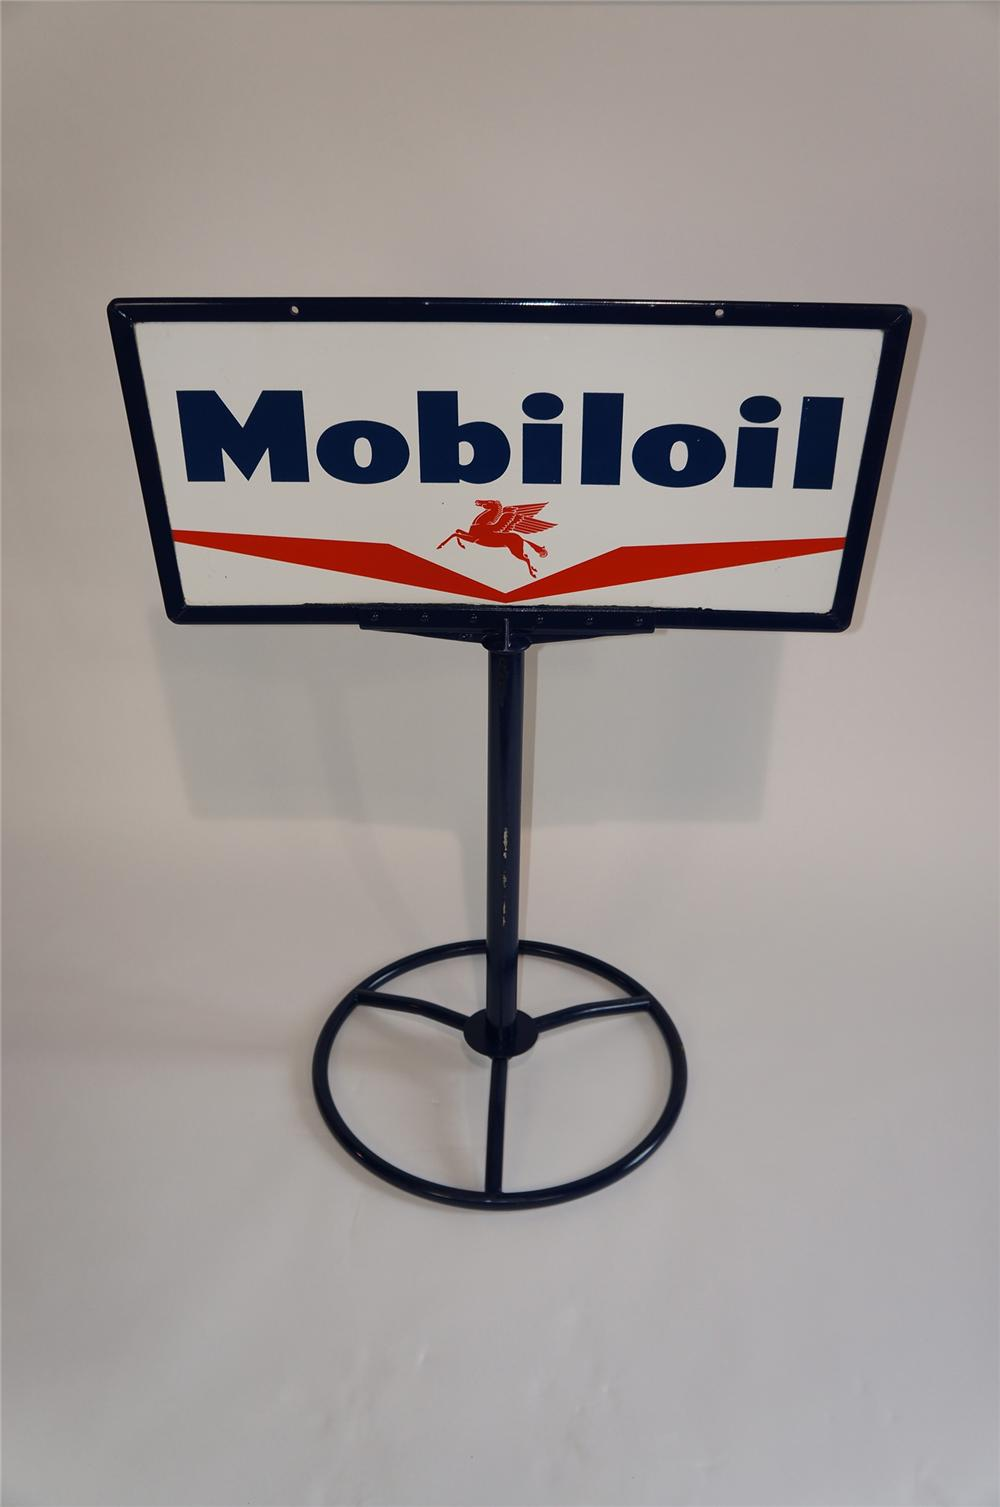 Sharp 1950s Mobil Oil double-sided porcelain curb sign with Pegasus logo. - Front 3/4 - 158035